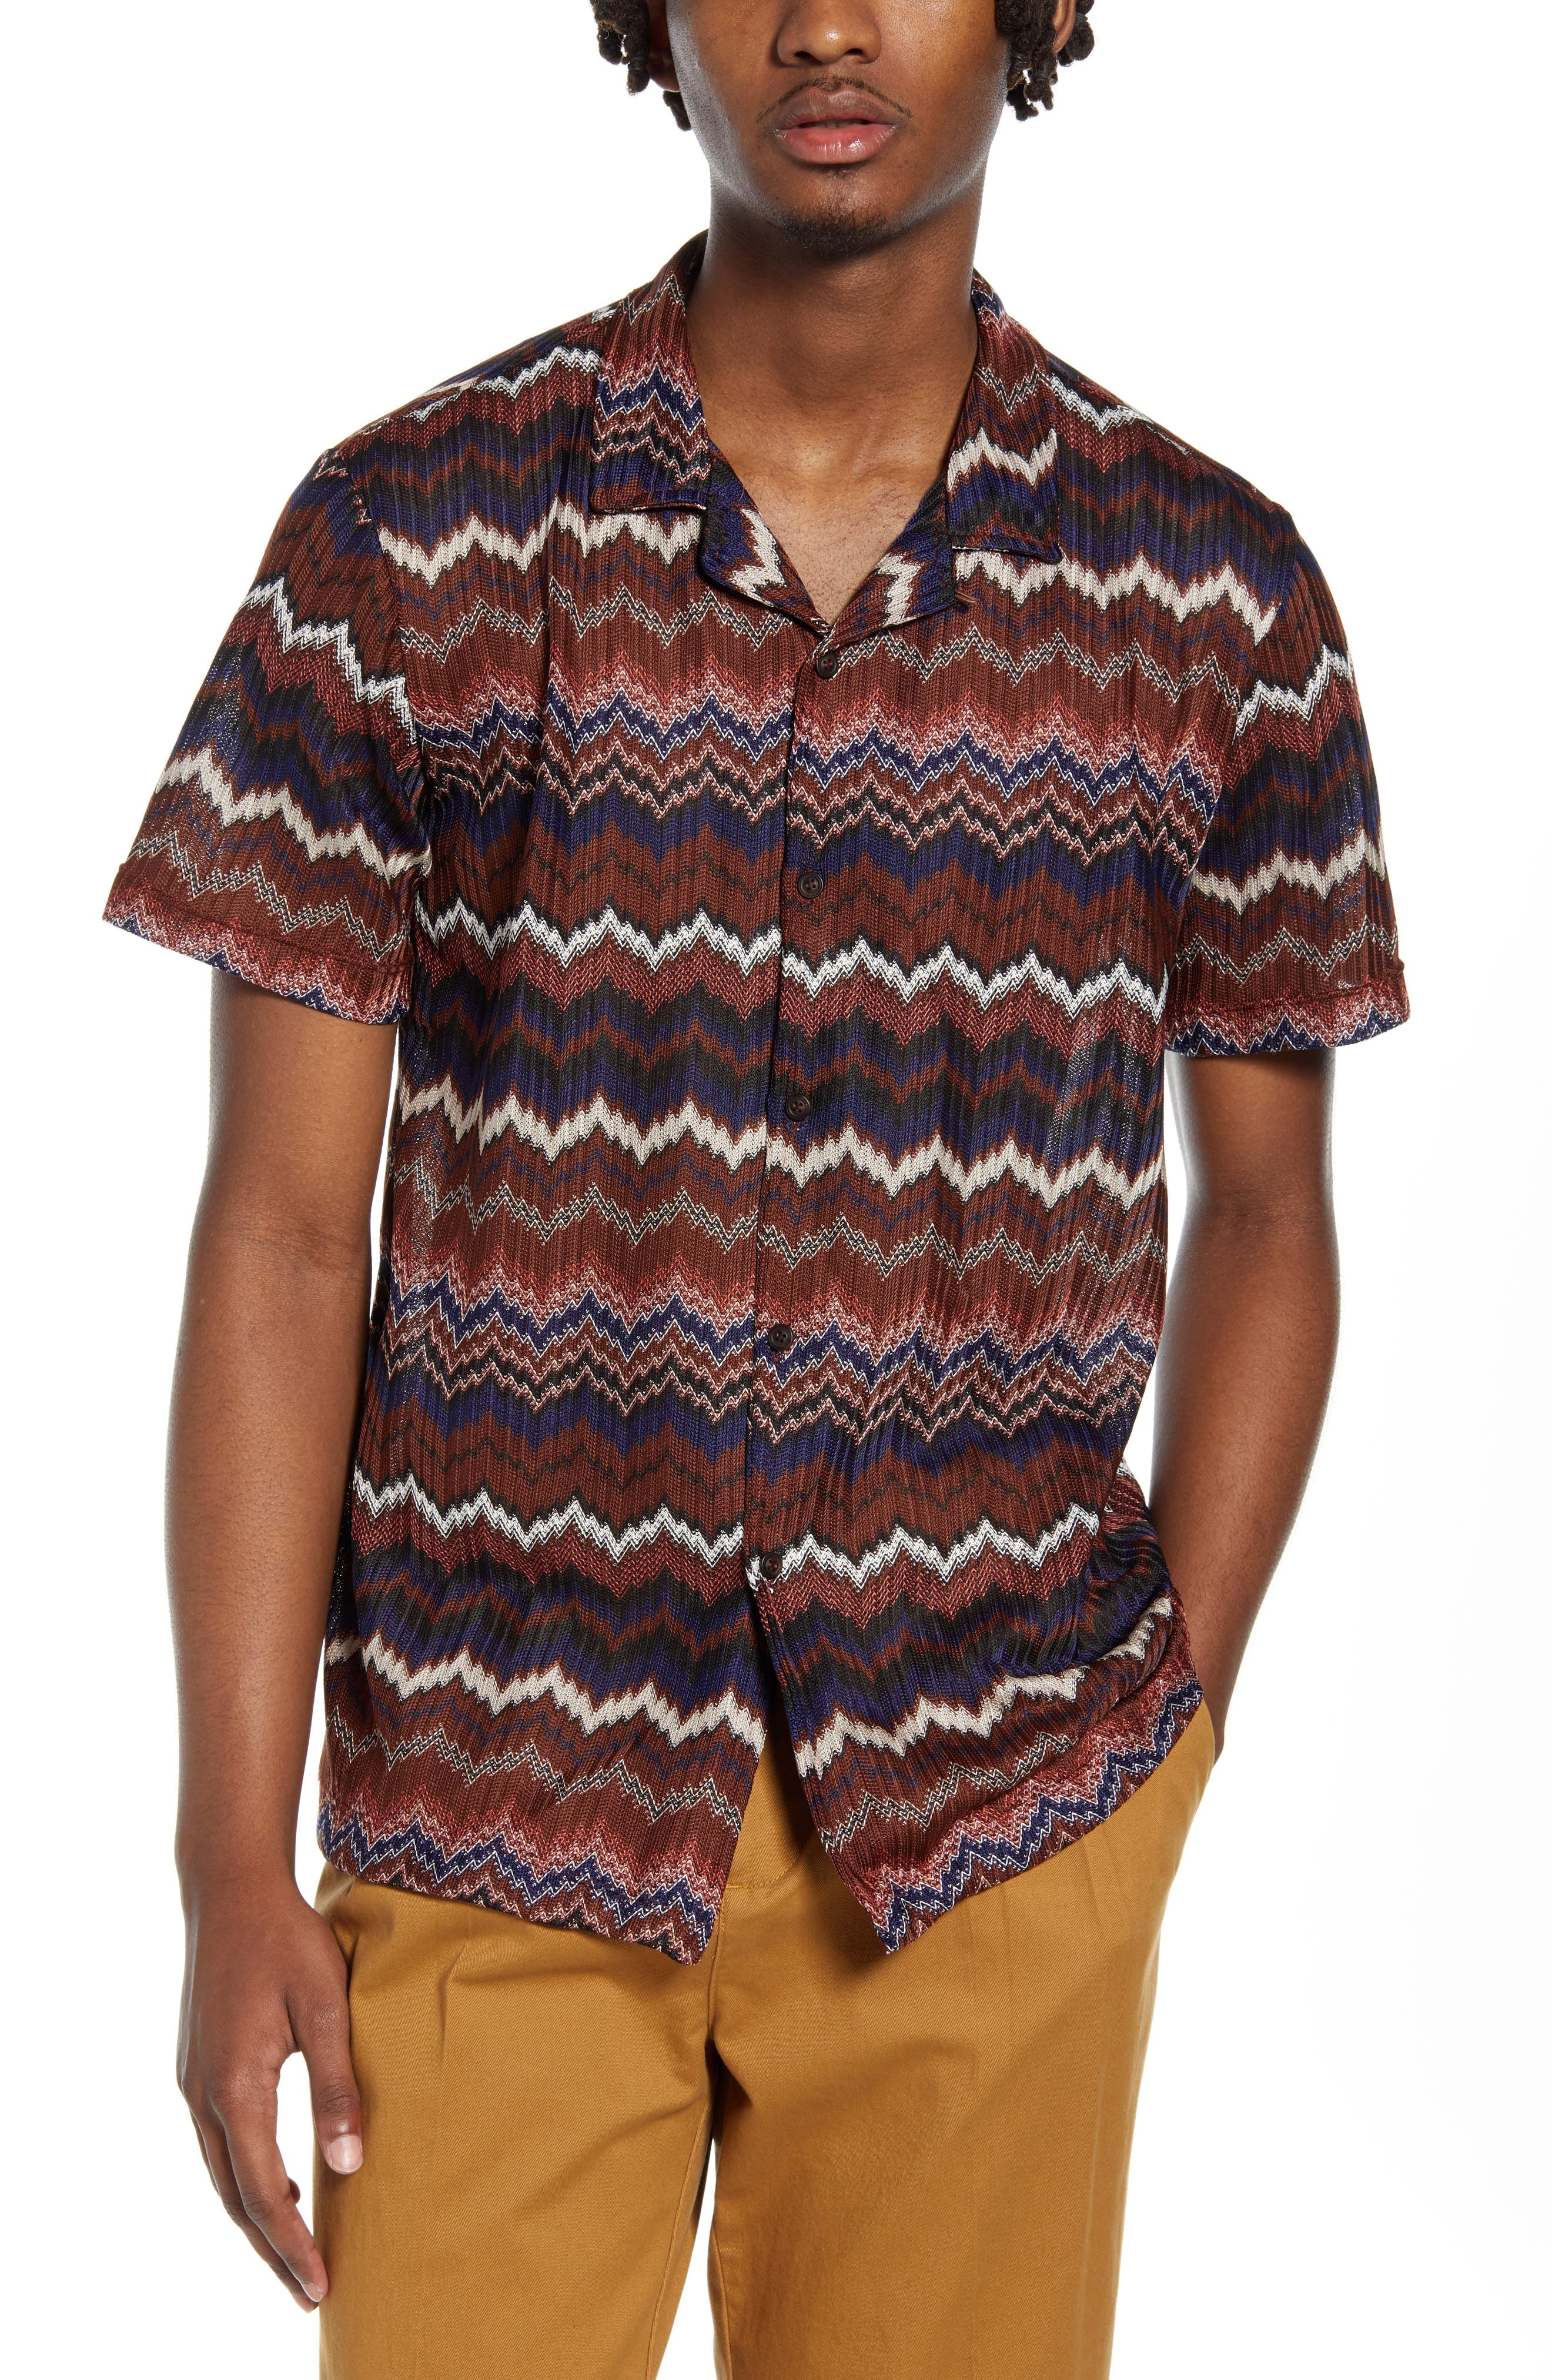 Vintage Shirts – Mens – Retro Shirts Mens Topman Chevron Short Sleeve Button-Up Knit Camp Shirt Size Small - Brown $70.00 AT vintagedancer.com